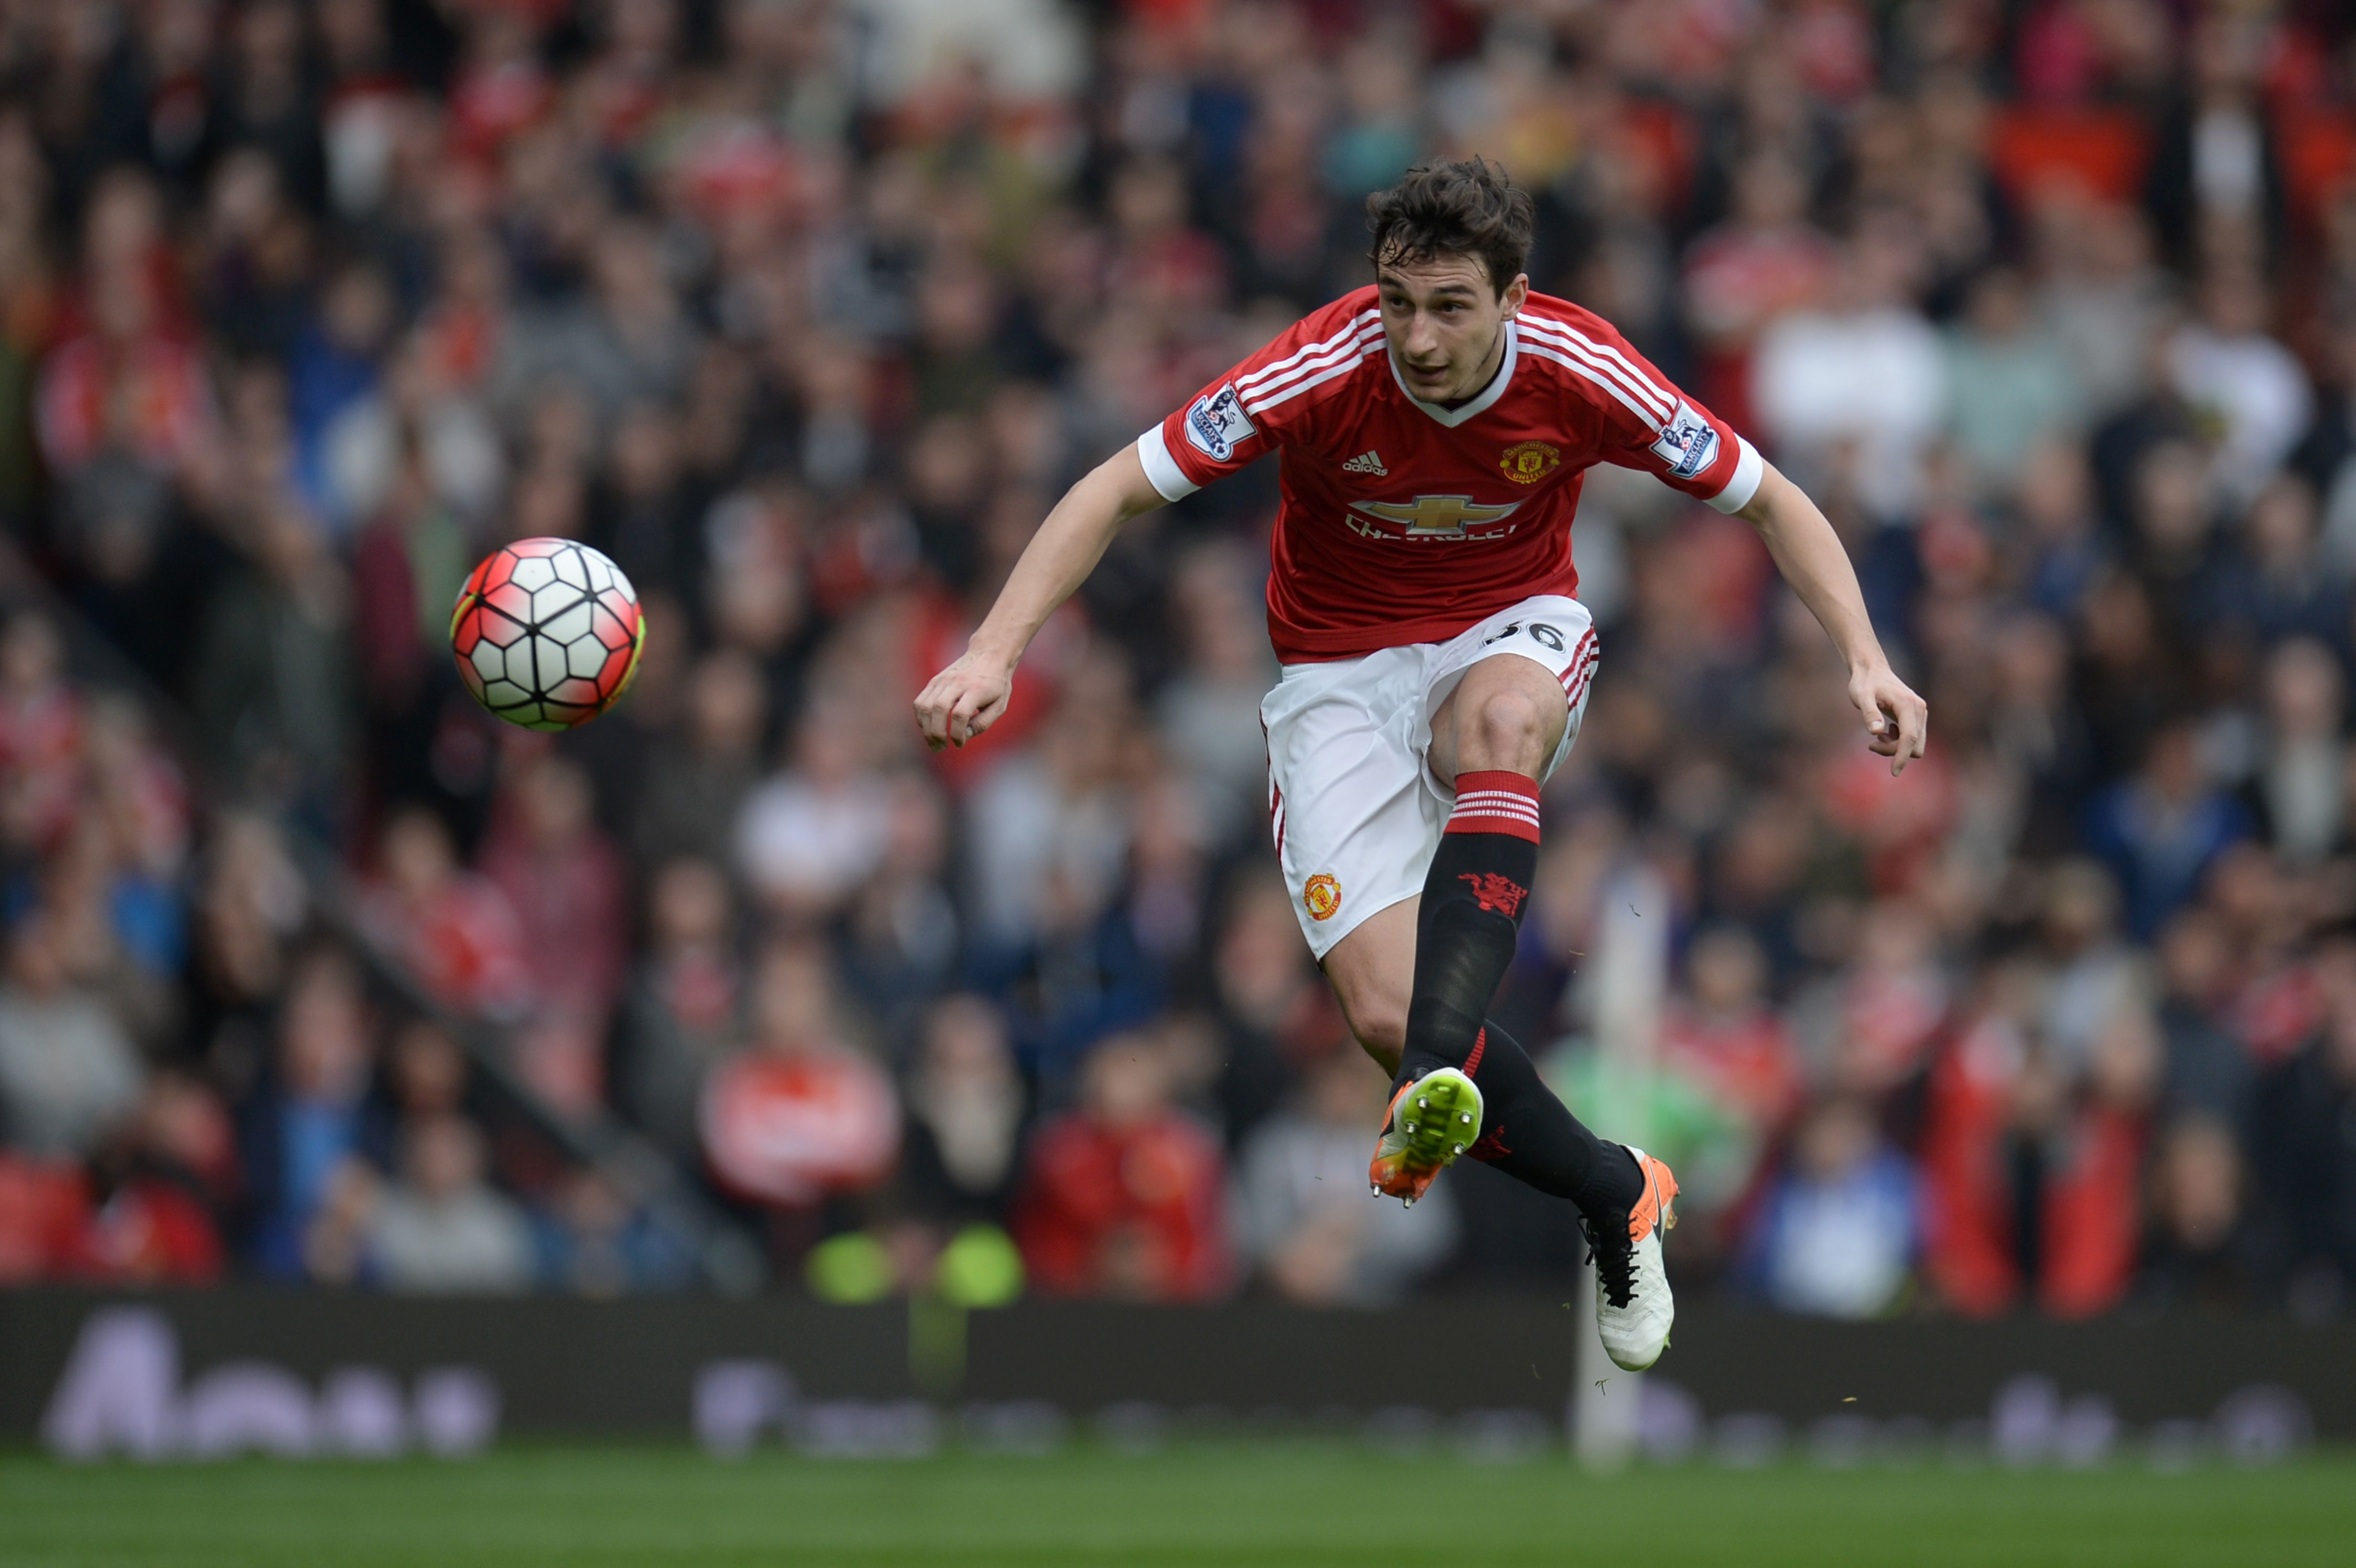 Manchester United's Italian defender Matteo Darmian plays the ball forward during the English Premier League football match between Manchester United and Everton at Old Trafford in Manchester, north west England, on April 3, 2016. / AFP / OLI SCARFF / RESTRICTED TO EDITORIAL USE. No use with unauthorized audio, video, data, fixture lists, club/league logos or 'live' services. Online in-match use limited to 75 images, no video emulation. No use in betting, games or single club/league/player publications. / (Photo credit should read OLI SCARFF/AFP/Getty Images)